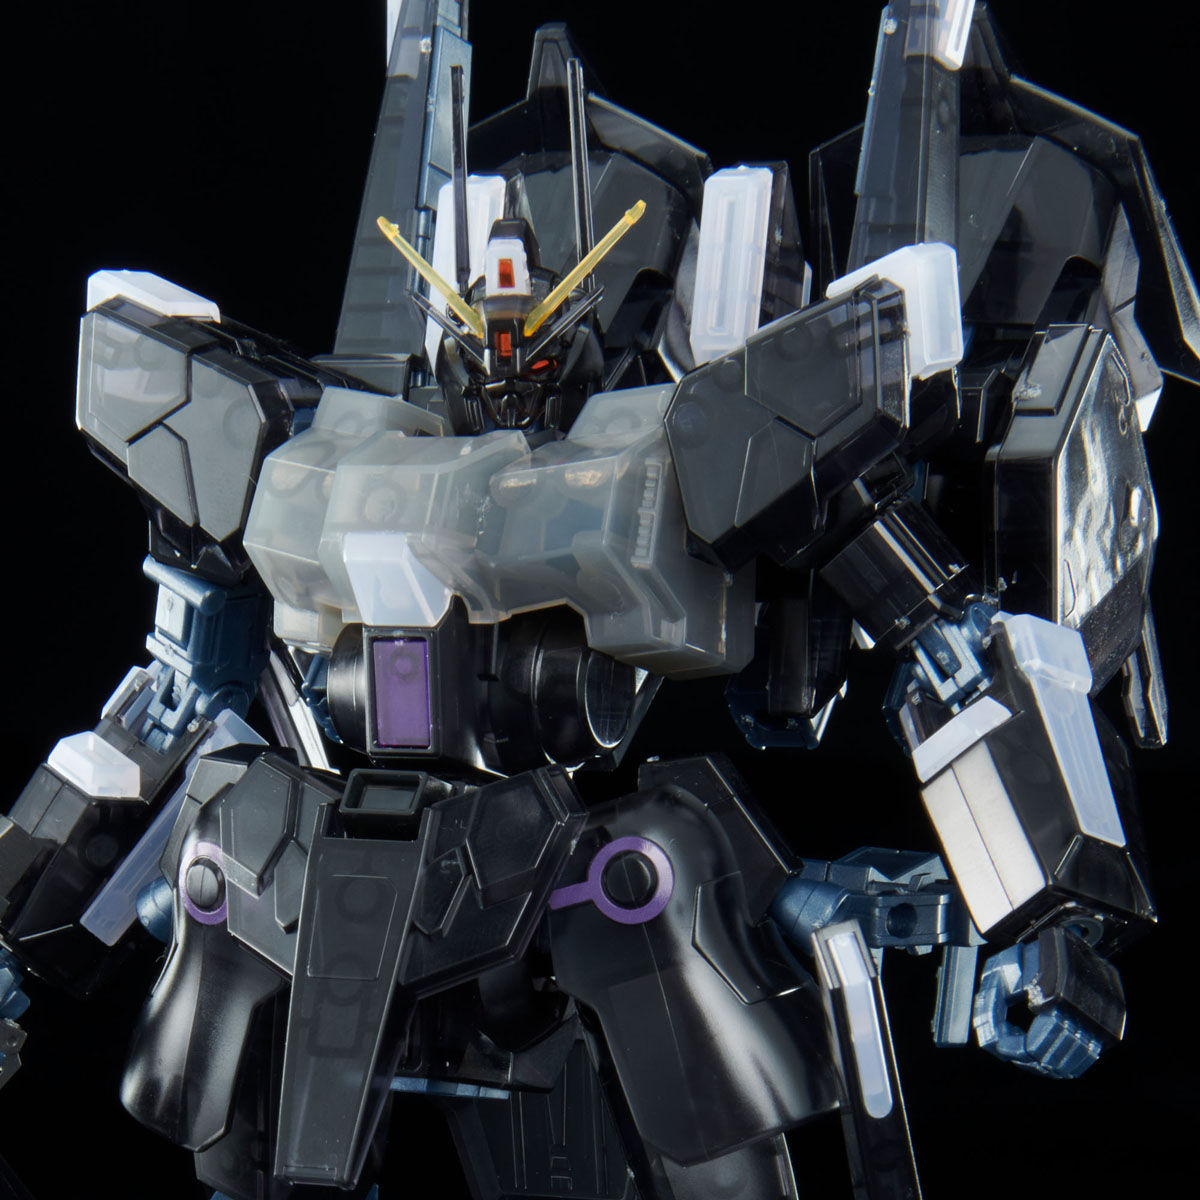 https://bandai-a.akamaihd.net/bc/img/model/xl/1000151927_1.jpg